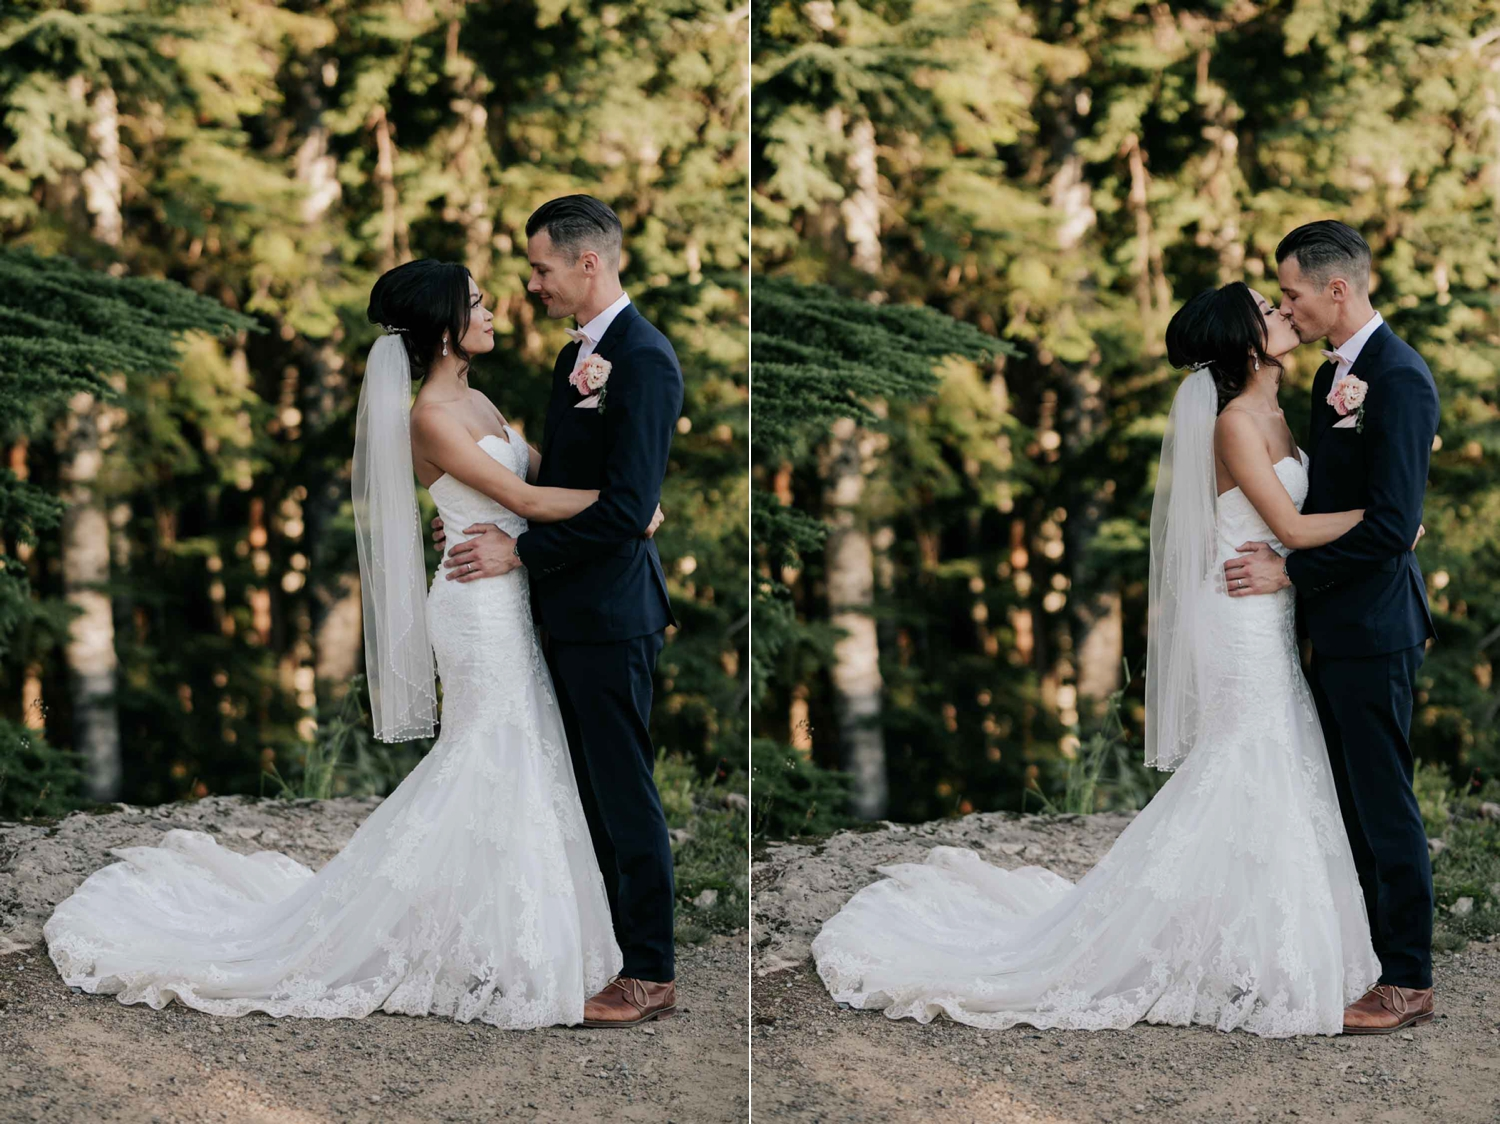 Intimate Natural Wedding Portrait Photographer Vancouver Island, BC